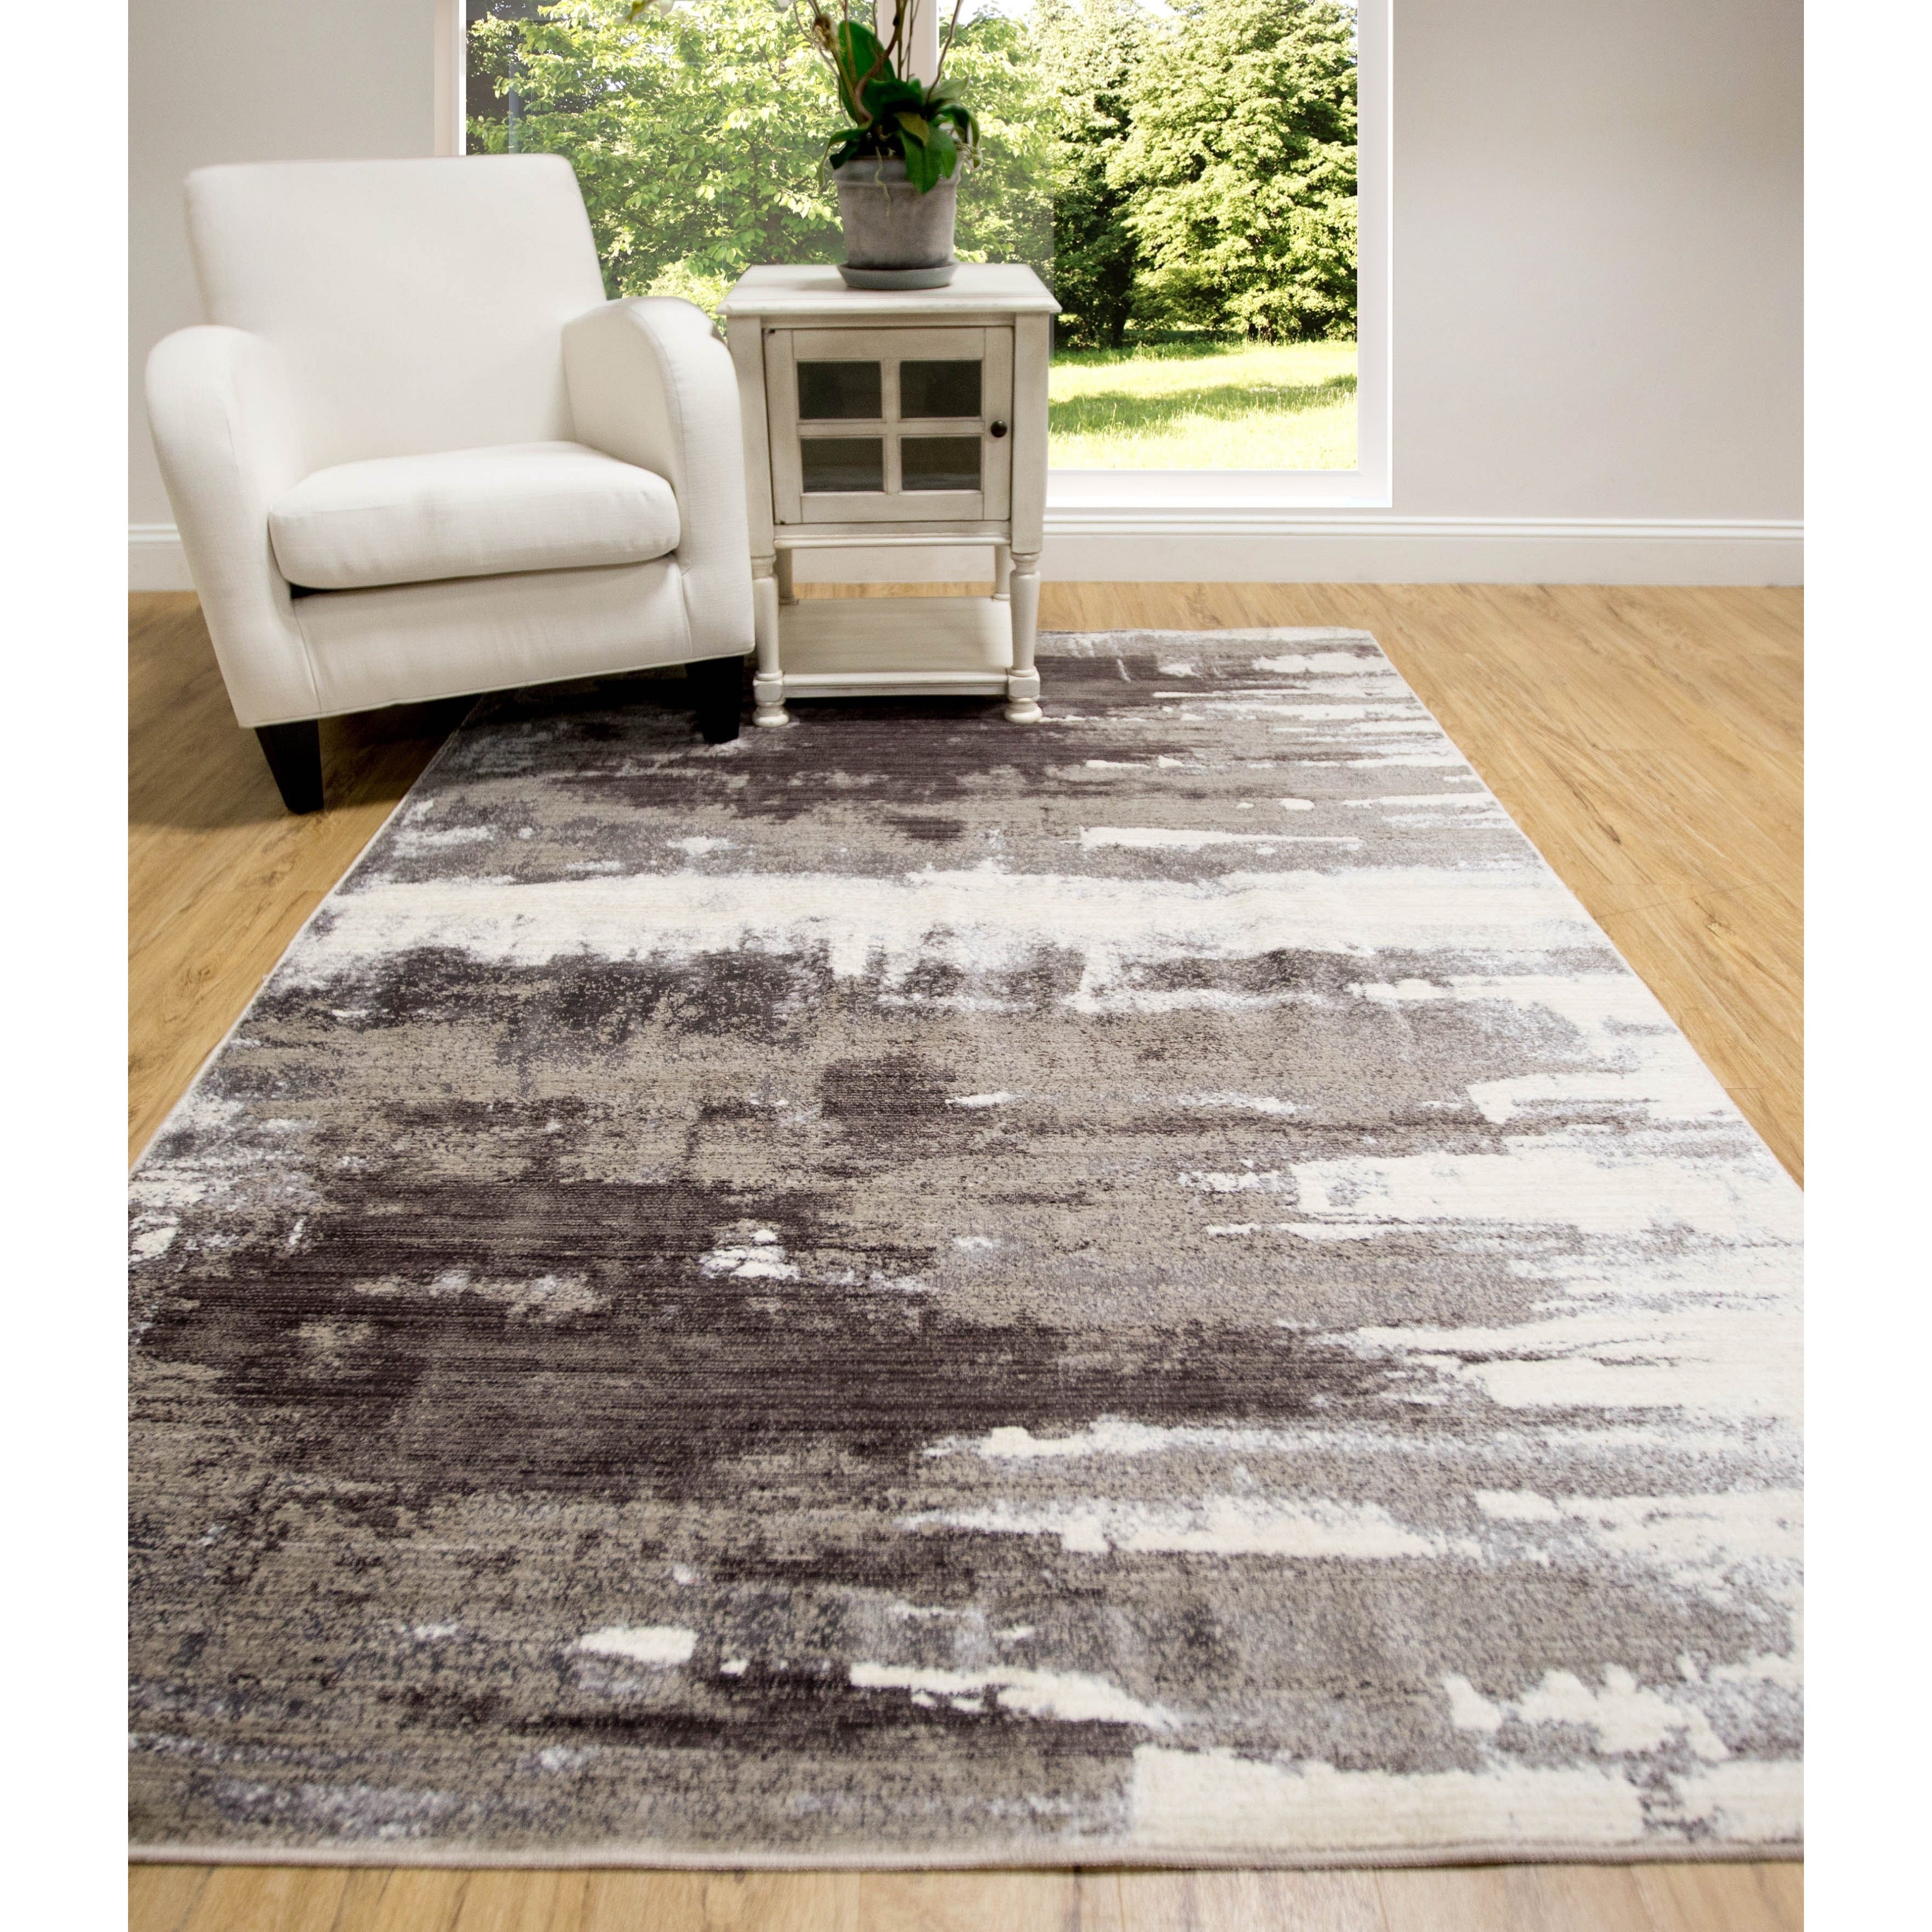 Shop Home Dynamix Luminescence Collection Floor Decor Rug Free